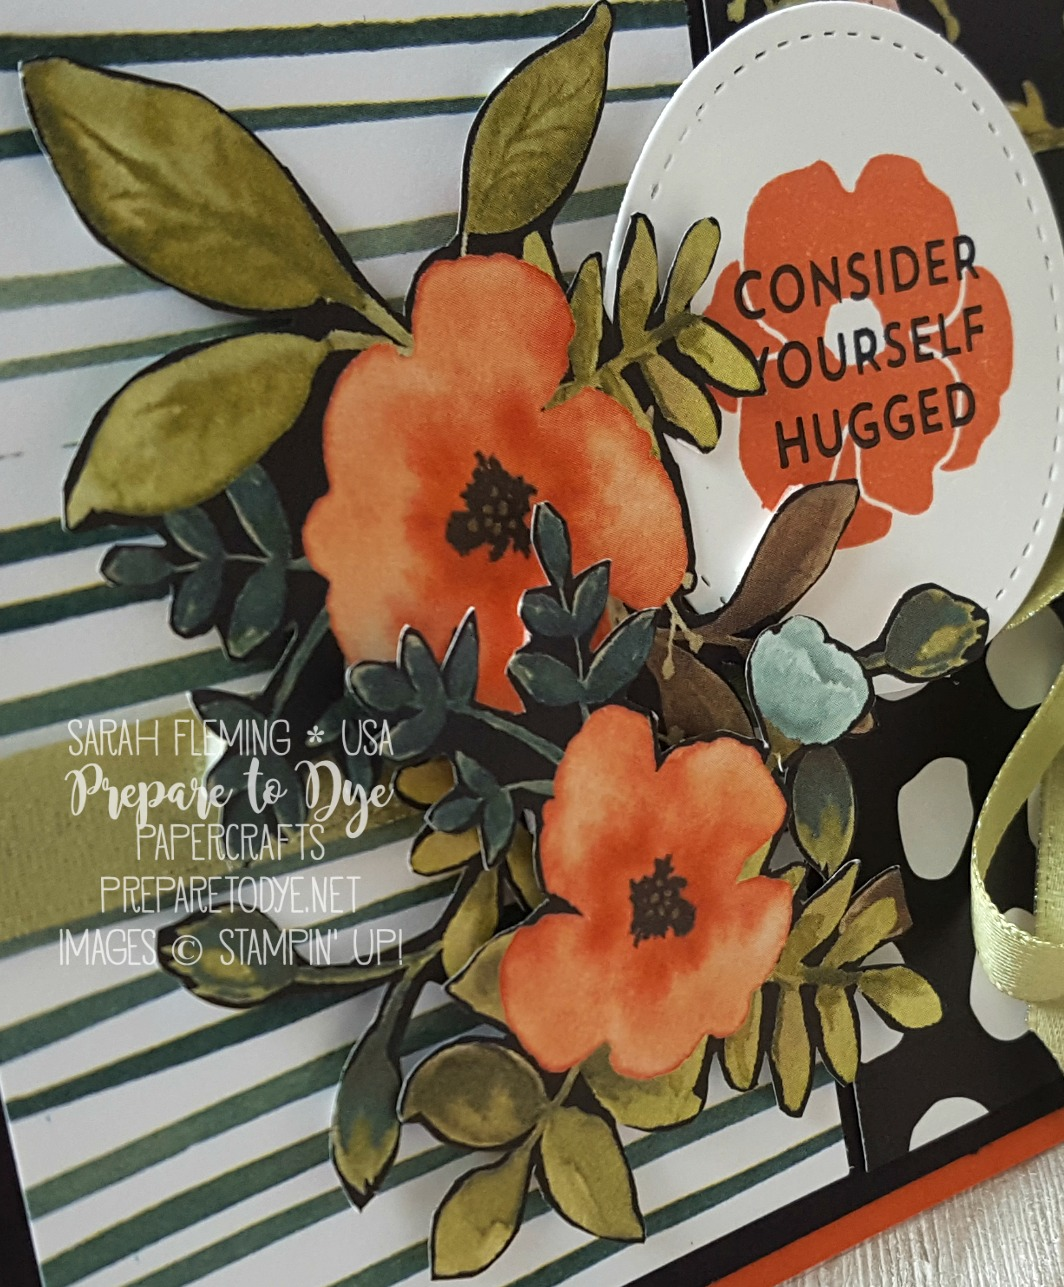 Stampin' Up! Whole Lot of Lovely suite - Lots of Love stamps, Stitched Shapes framelits - Creative Crew sketch challenge at Splitcoaststampers - Sarah Fleming - Prepare to Dye Papercrafts